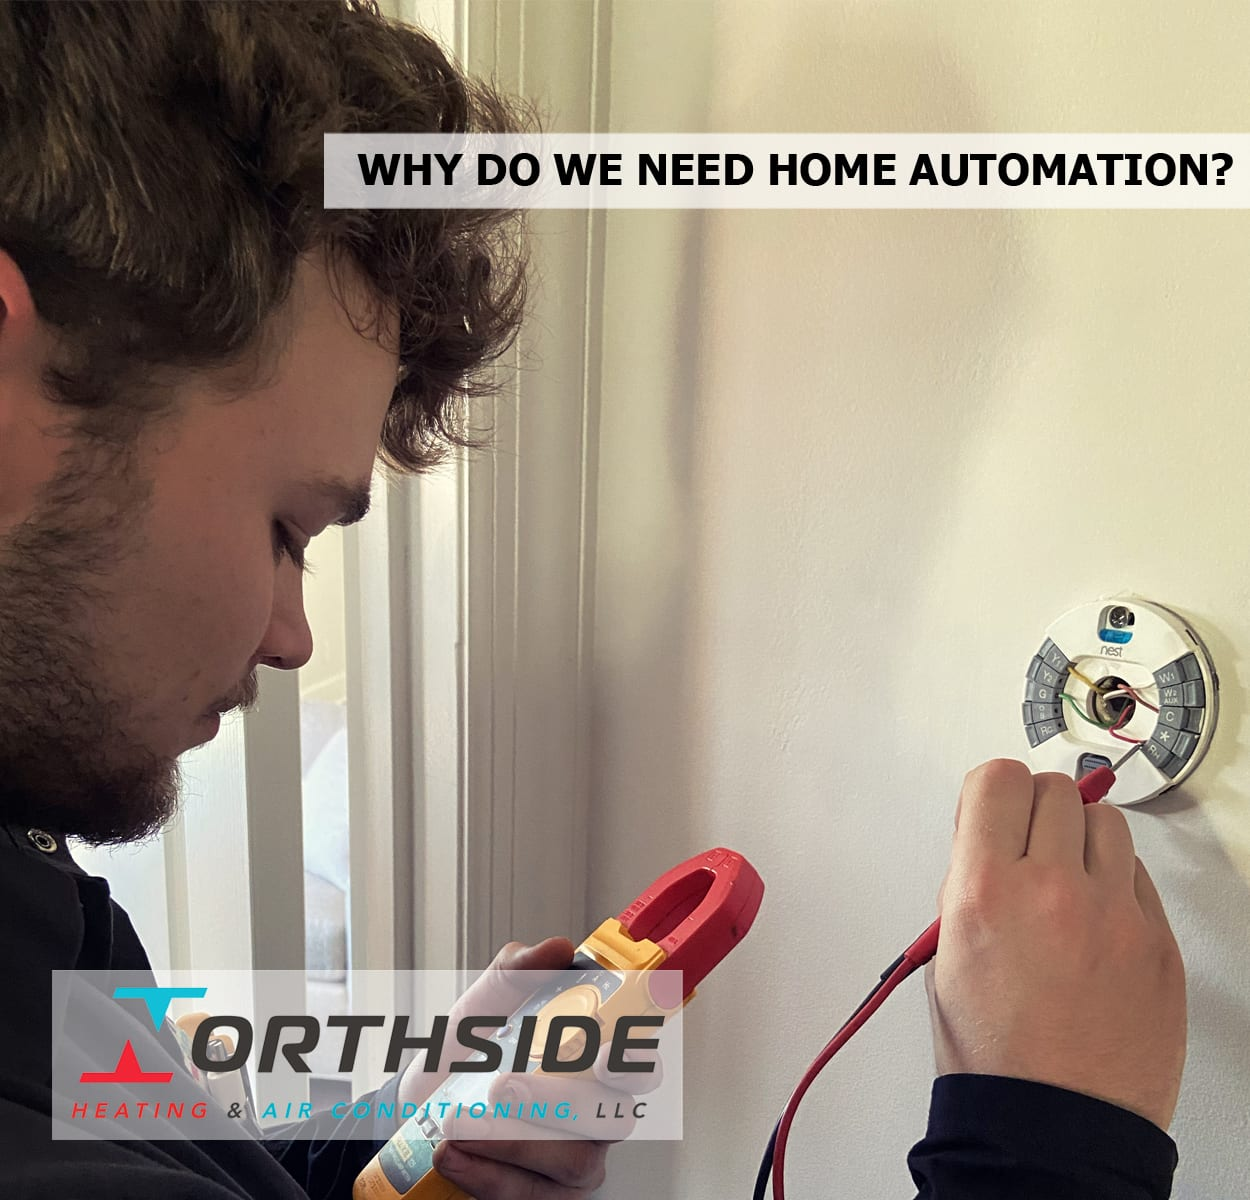 WHY DO WE NEED HOME AUTOMATION?